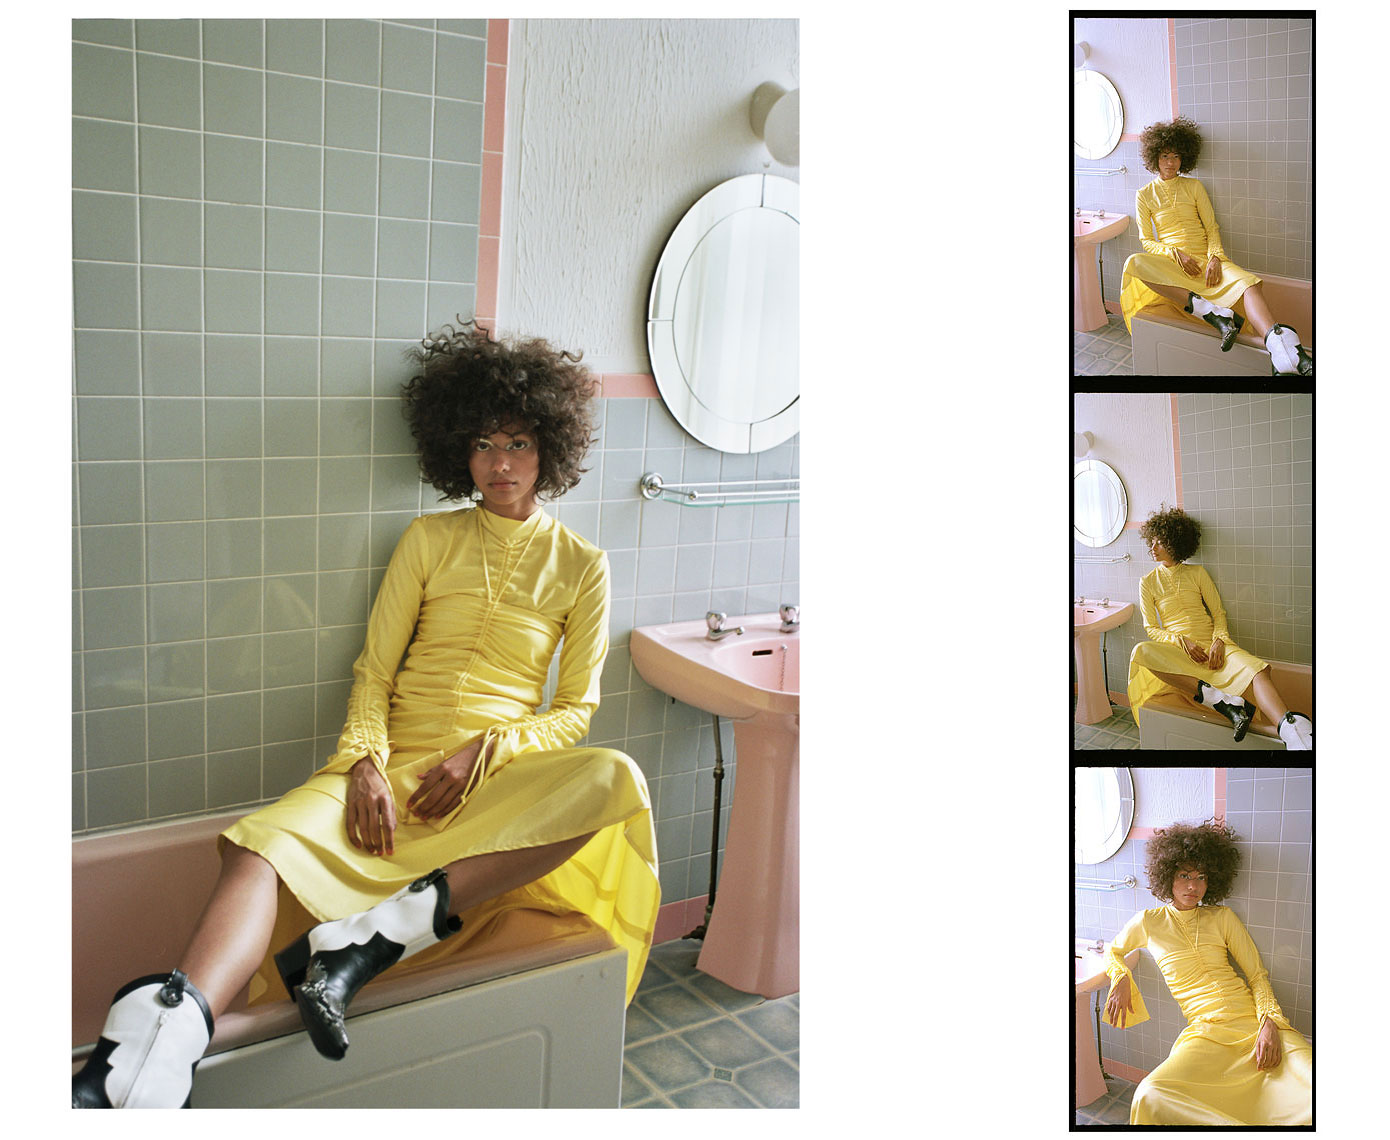 issie-gibbons-fashion-stylist-schon-walpole-bay-hotel-pastel-bathroom-yellow-cowboy-boots-richard-malone